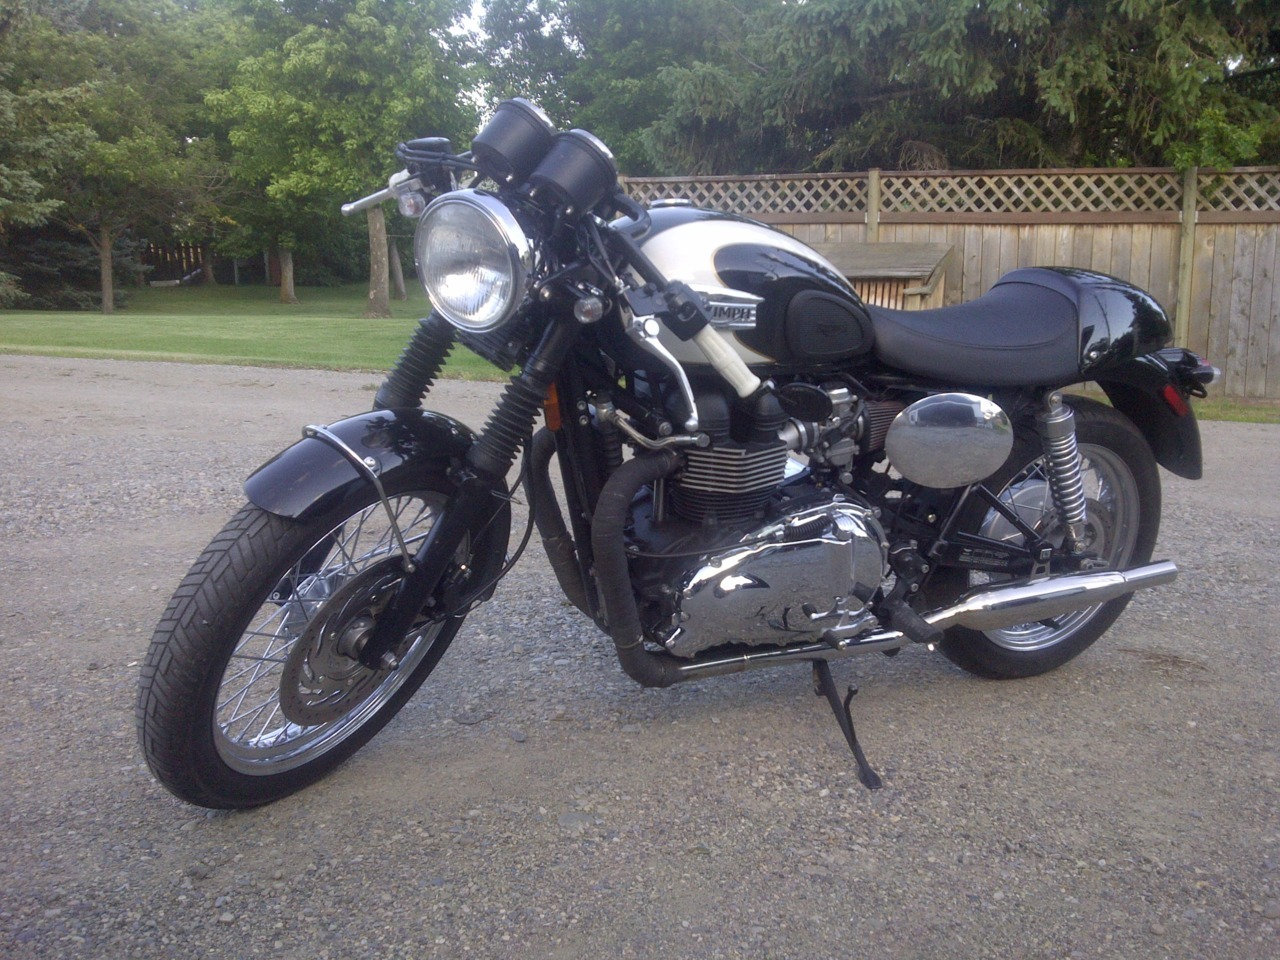 Thought I'd add a photo of my sons Bonneville, lightly cafe'd. Air box removed, British Customs sleepers, power commander V with autotune and various bits and pieces picked up here and there.